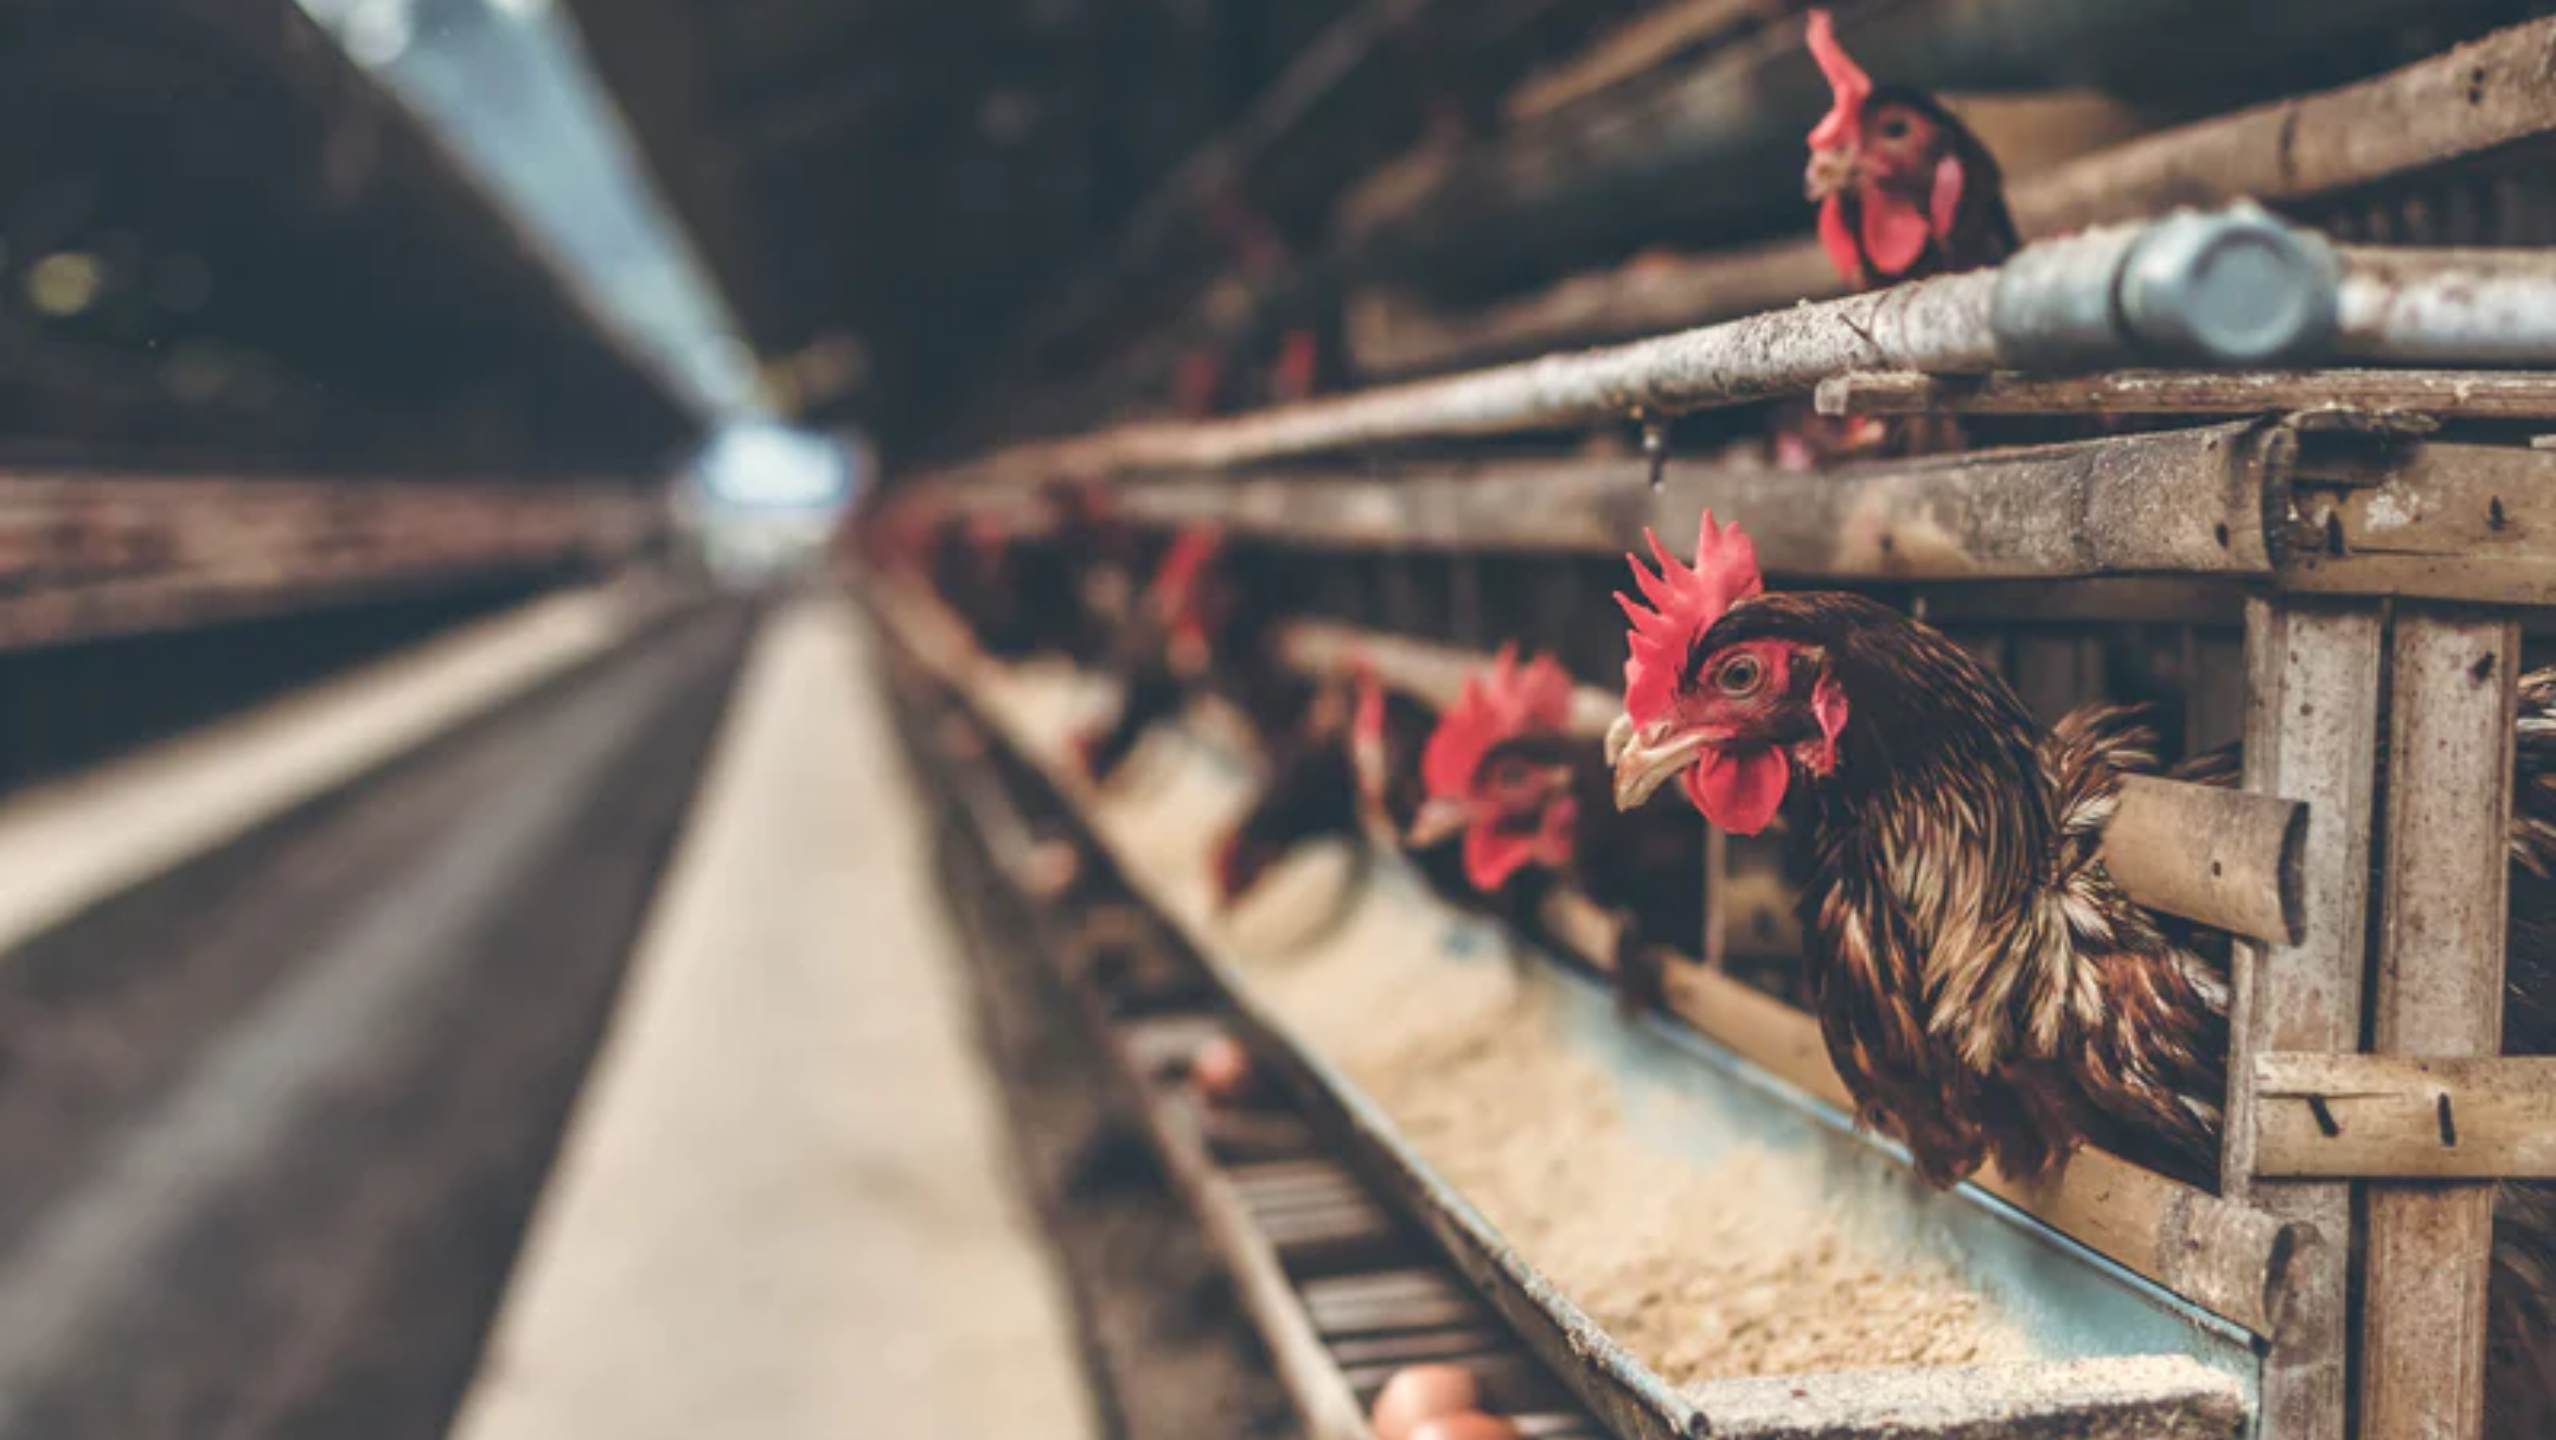 The Sad Horrors of Factory-Farmed Chickens